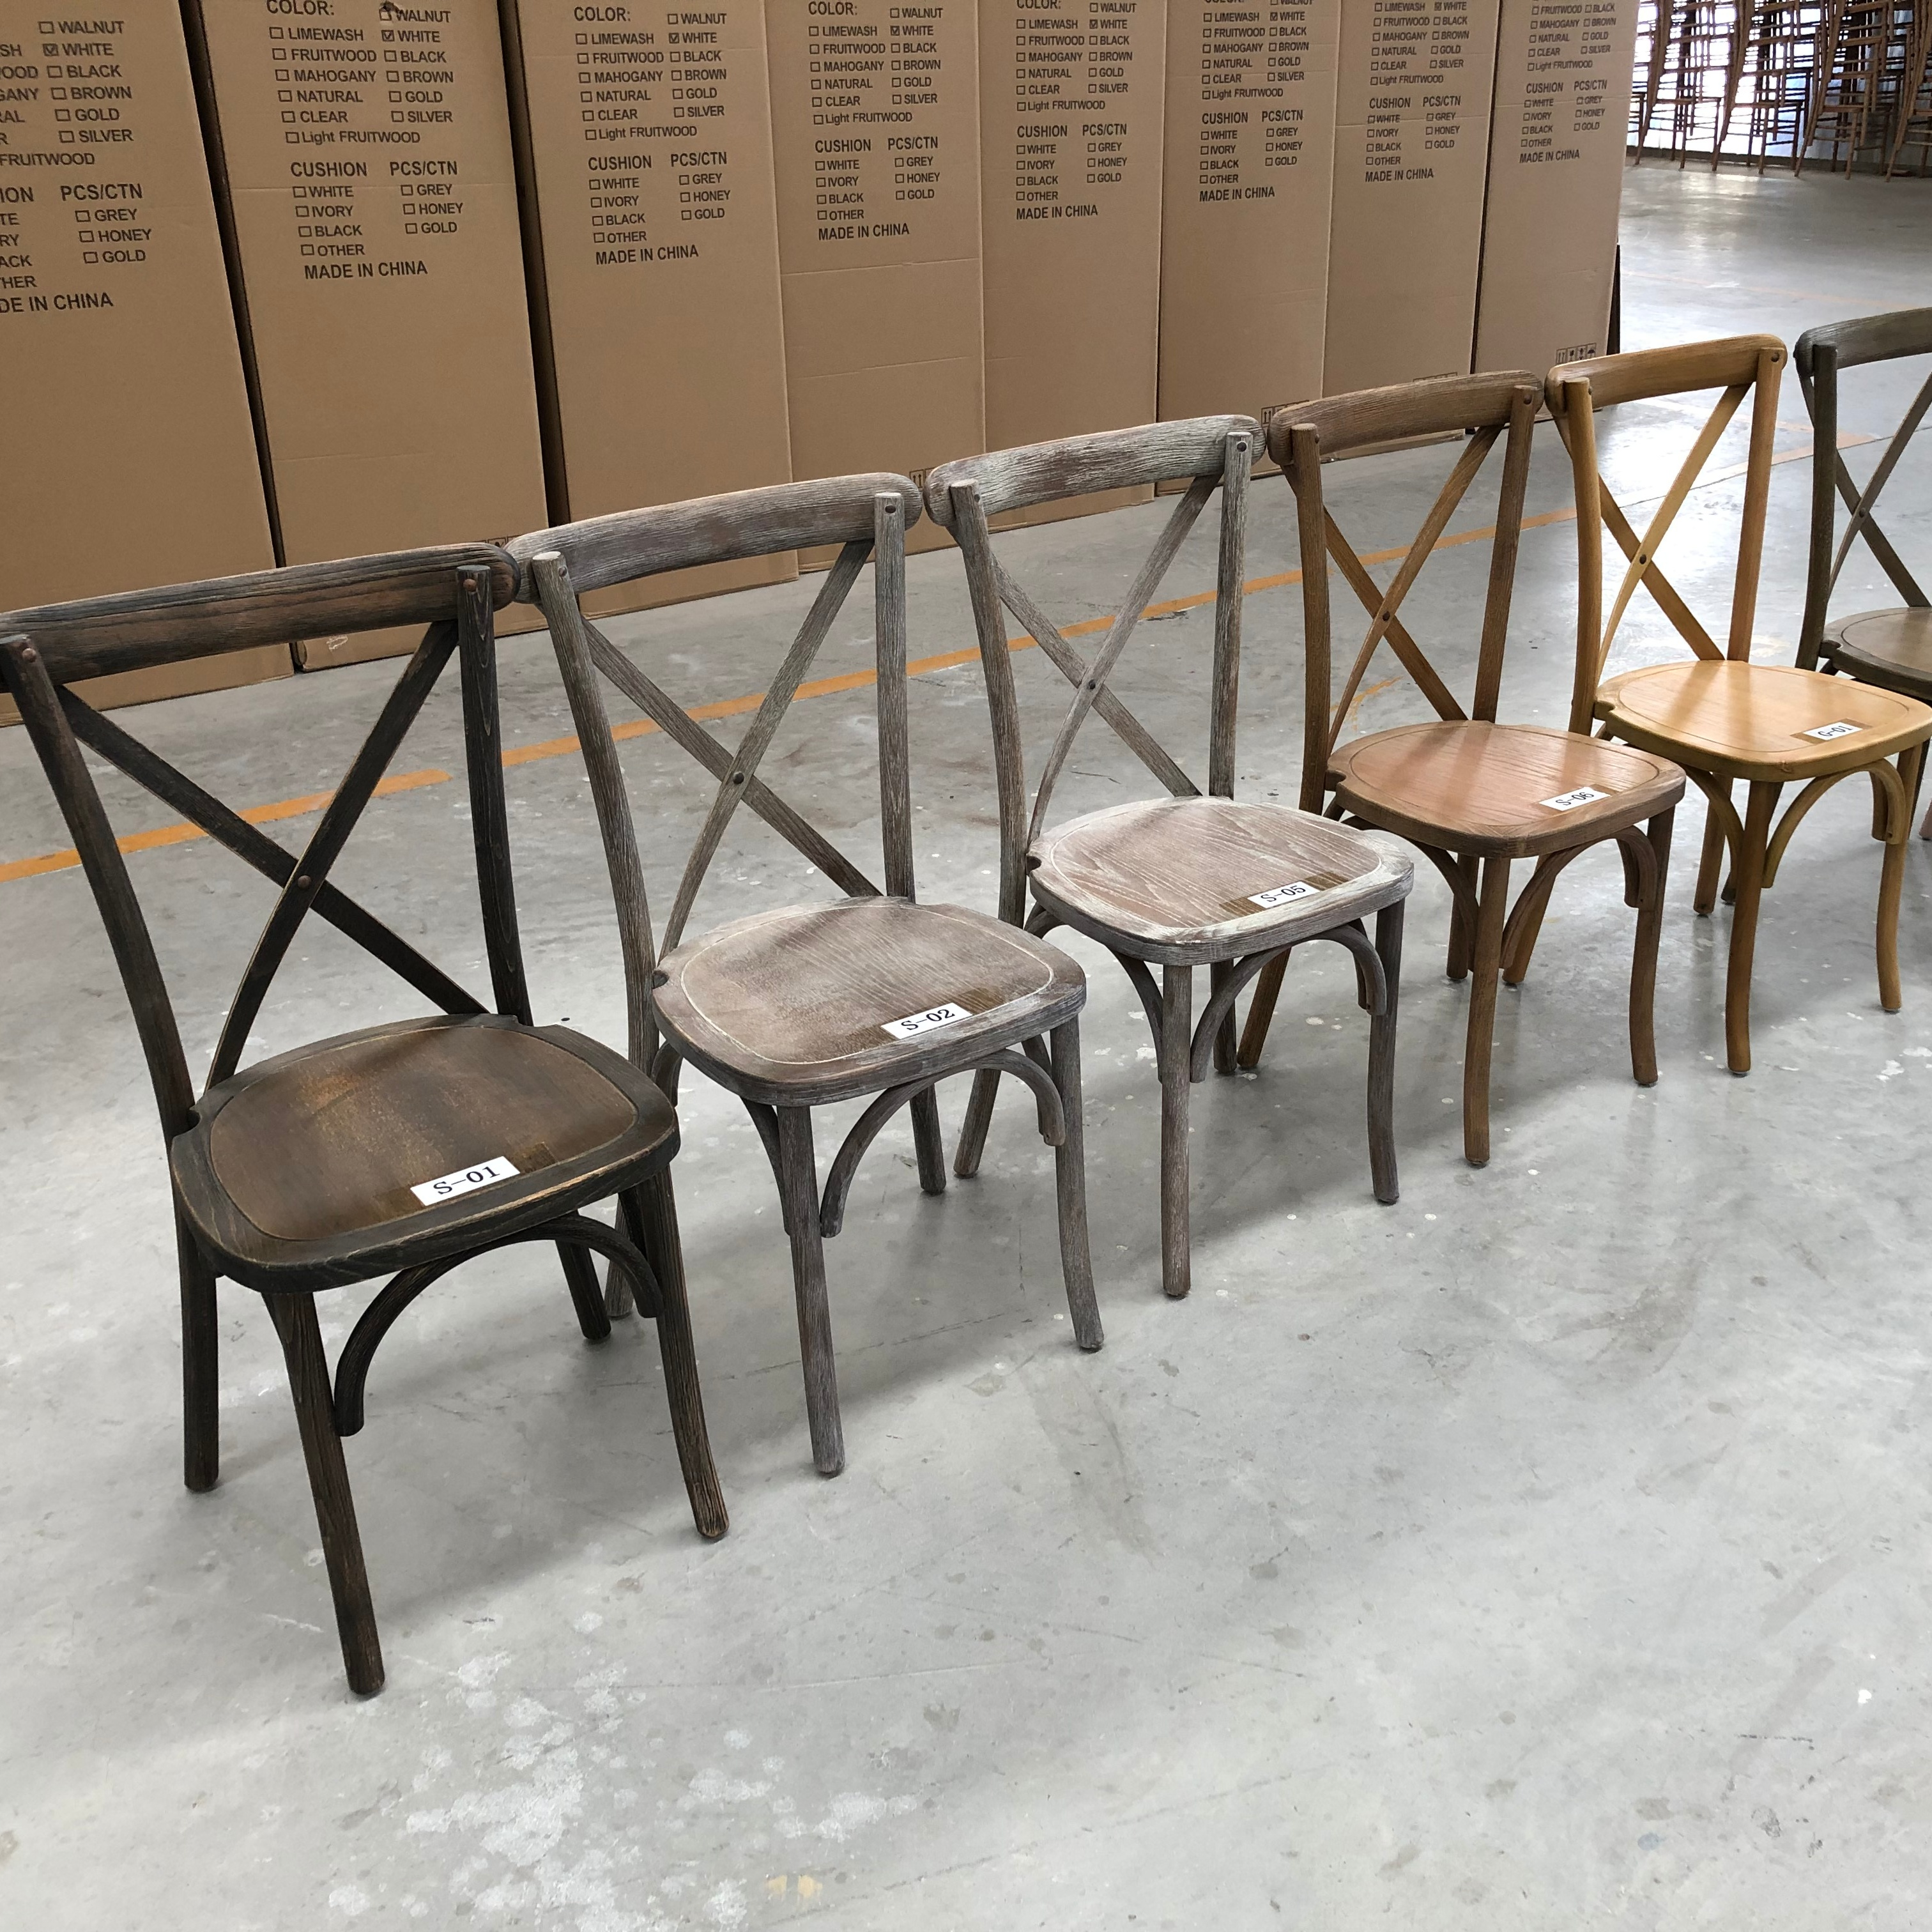 Wholesale High Quality X Cross Back Dining Chair Colorful Tuscan Crossback Chair Buy Cross Back Chair Dining Chair Wedding Chair Product On Alibaba Com